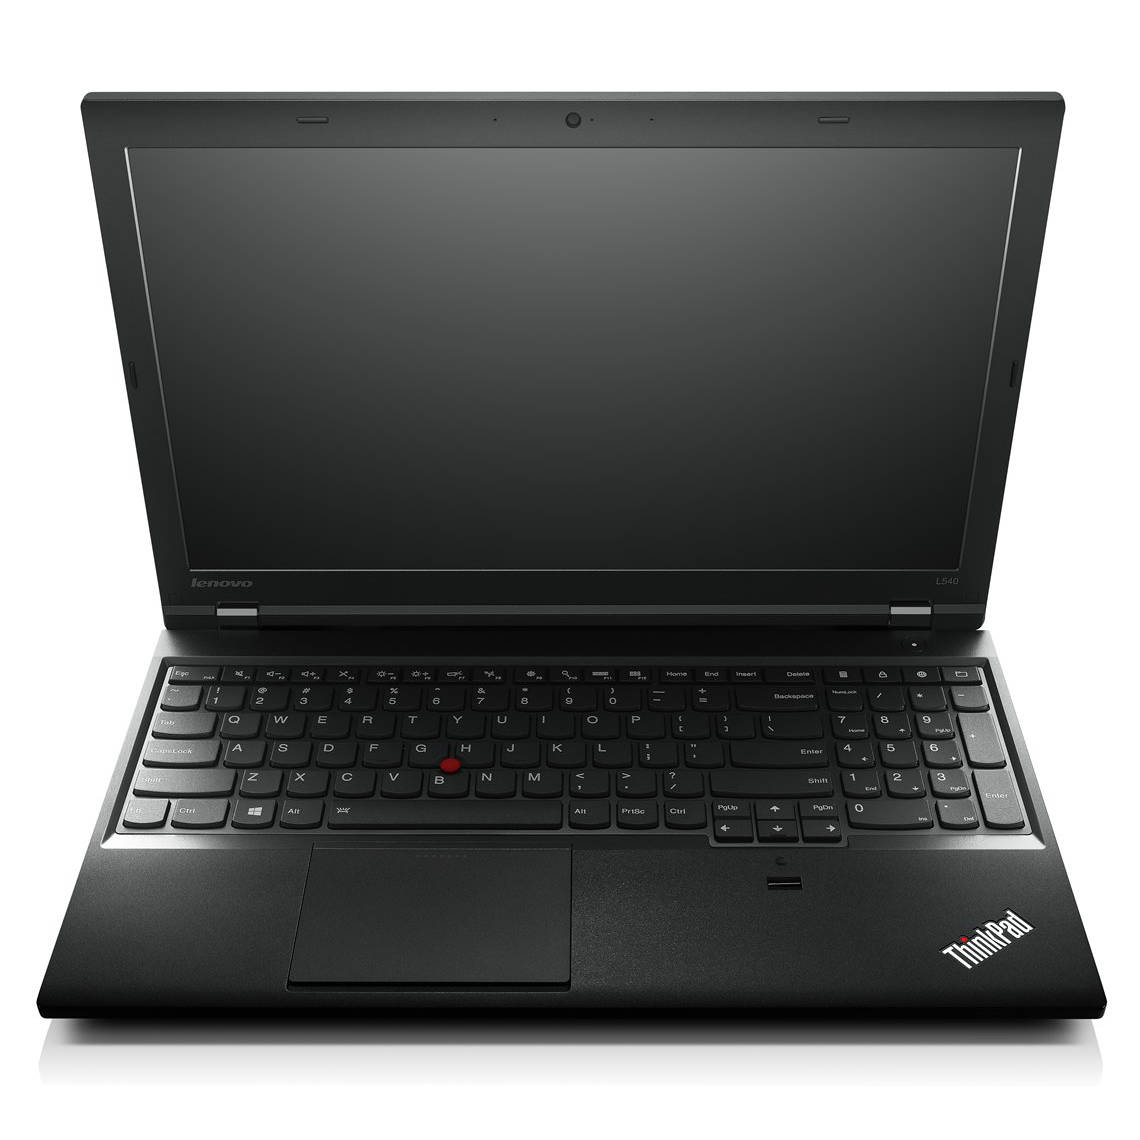 lenovo thinkpad l540 20av0033fr pc portable lenovo sur. Black Bedroom Furniture Sets. Home Design Ideas